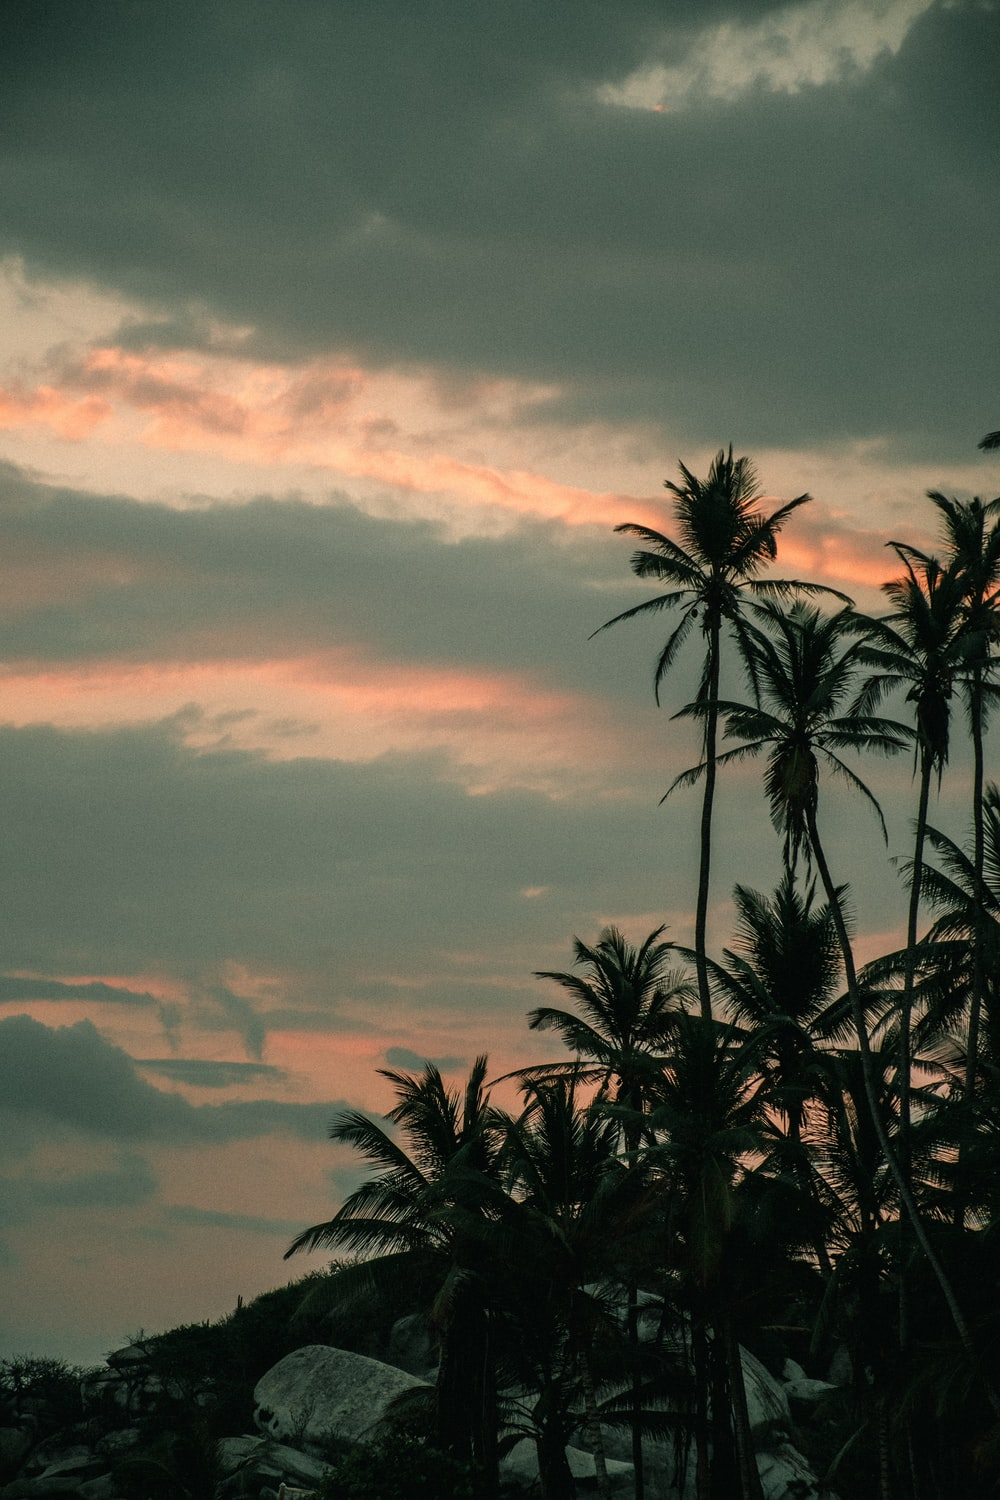 green palm trees under cloudy sky during daytime